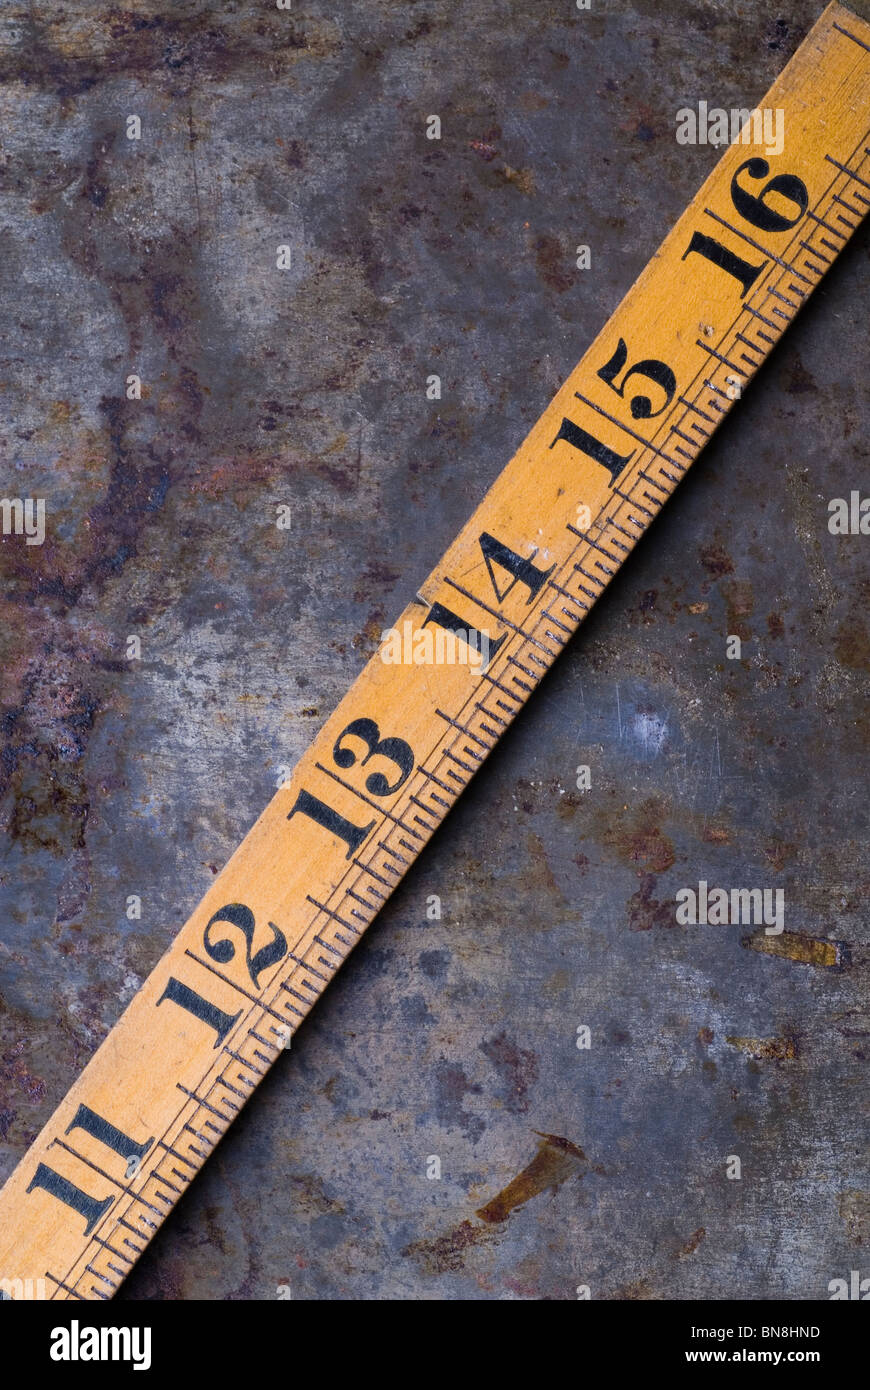 Old wooden ruler over a rusty grunge background - Stock Image